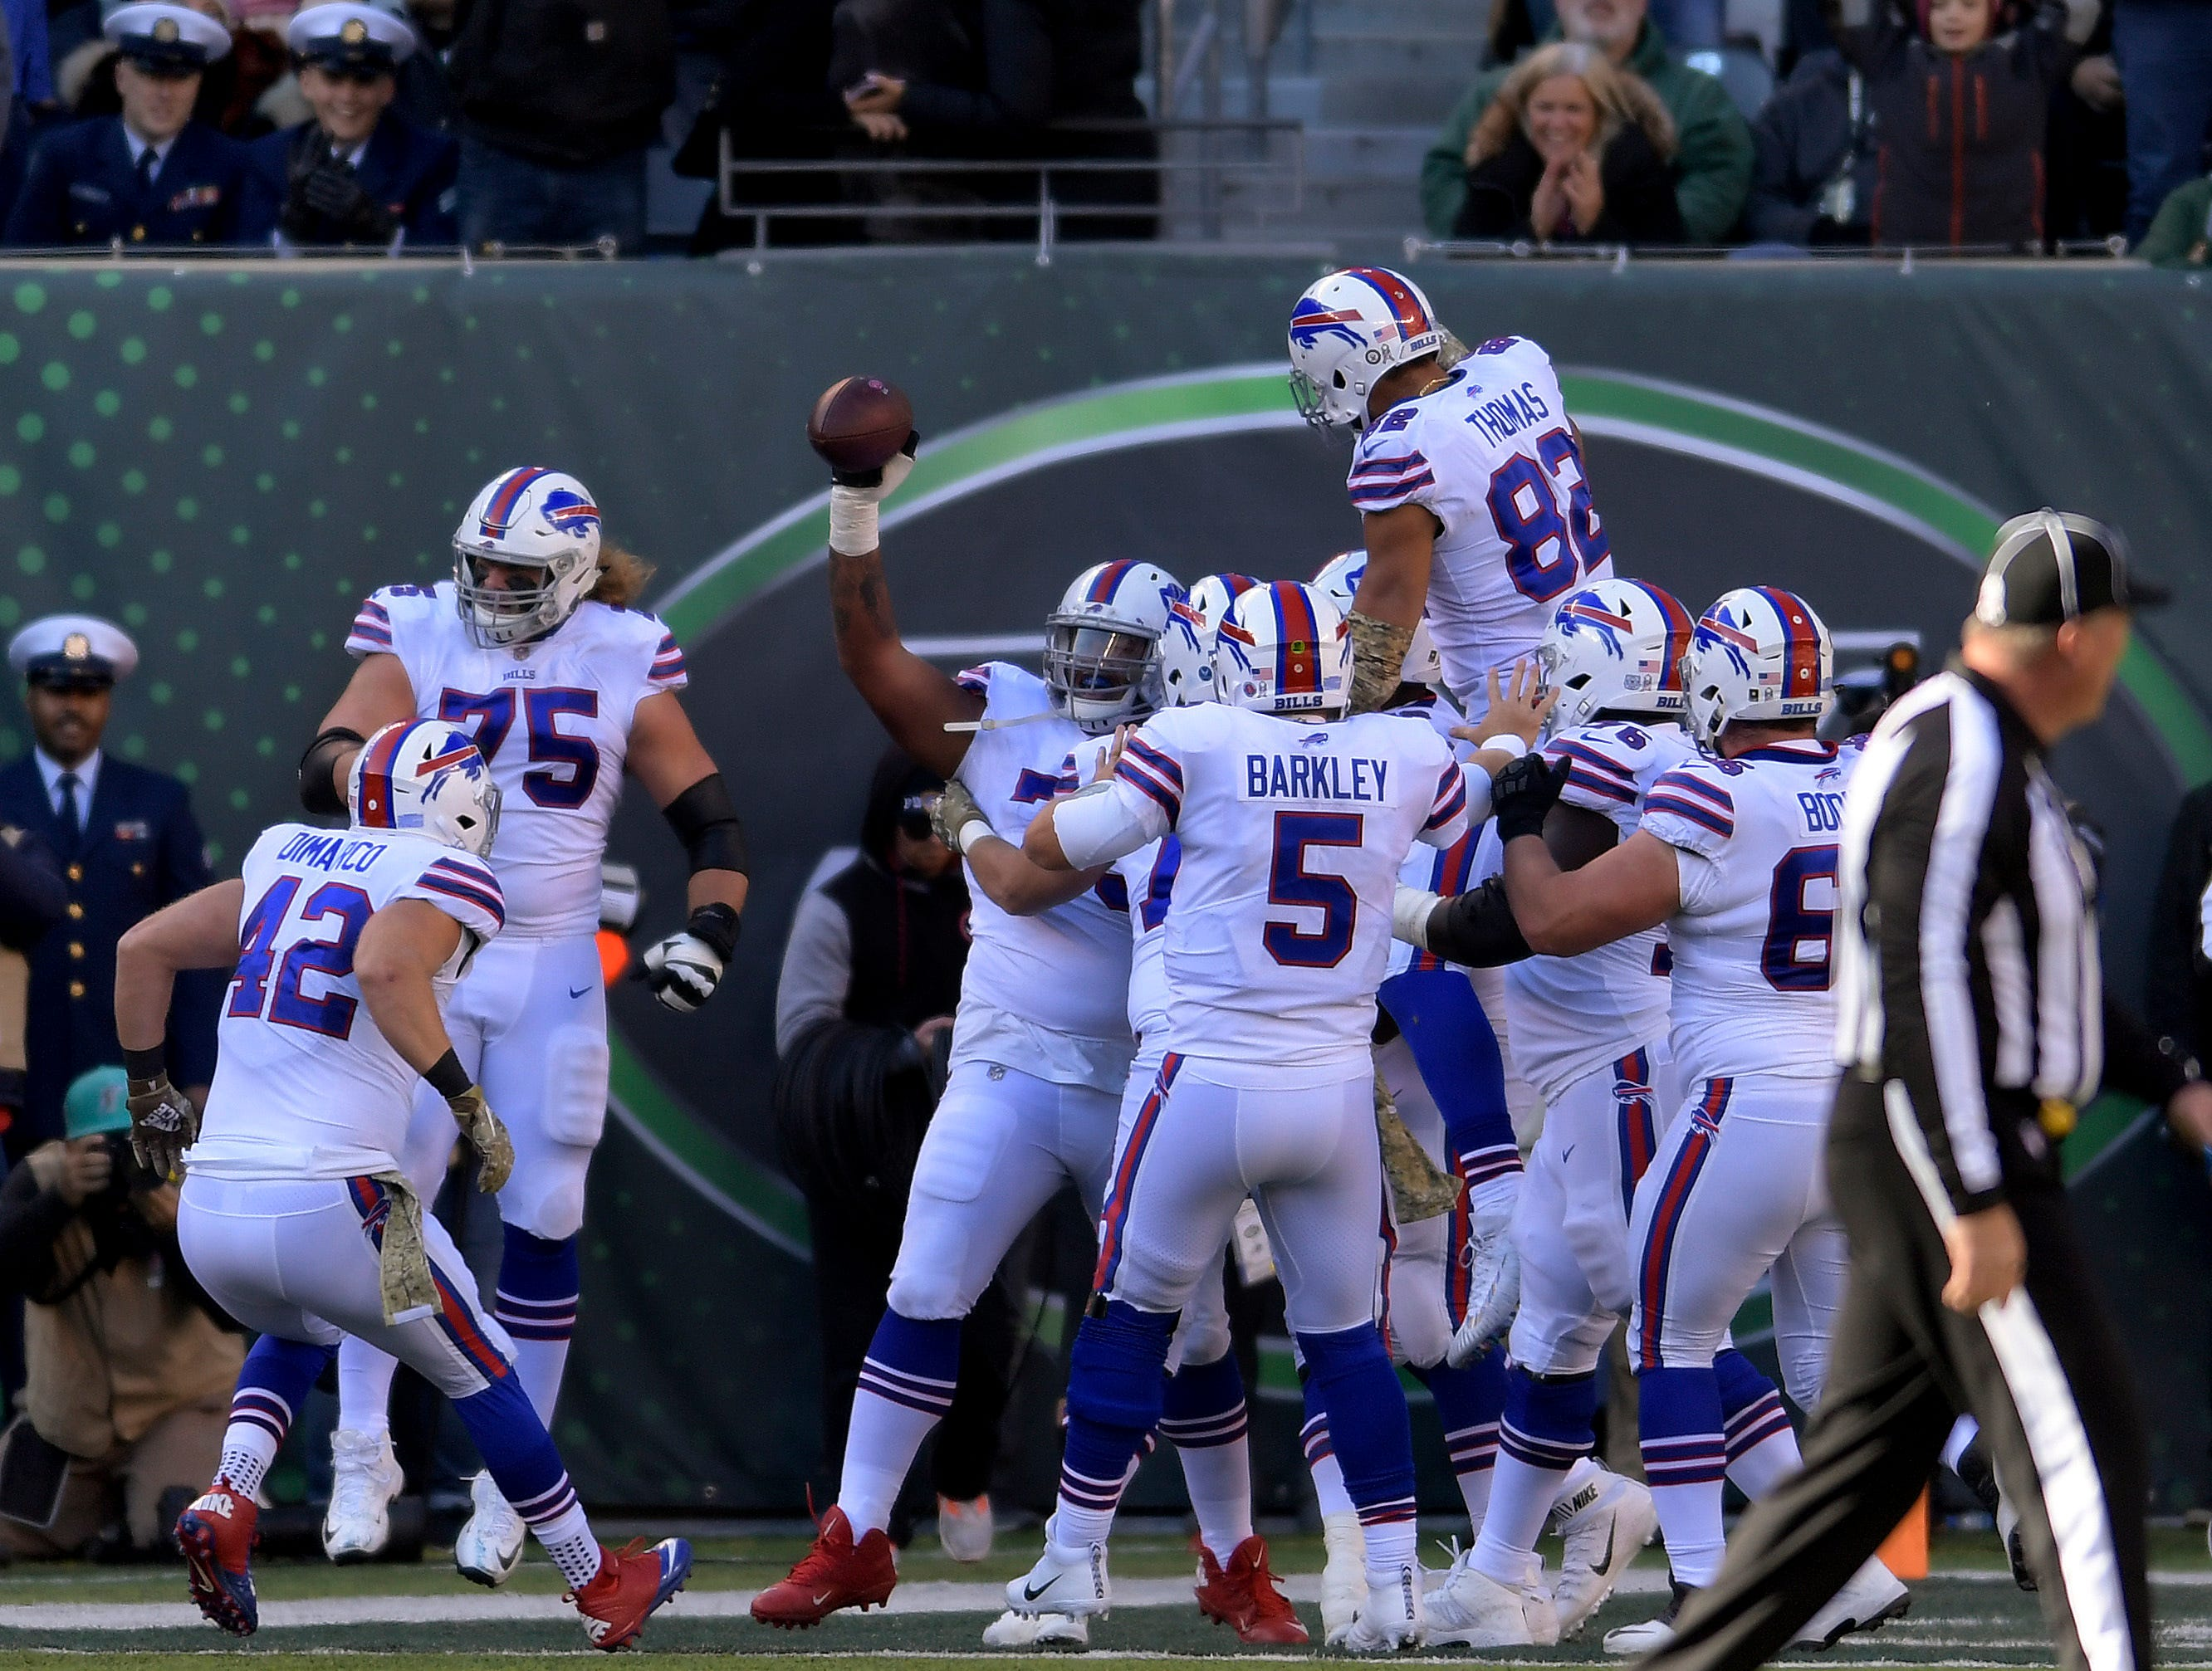 The Buffalo Bills celebrate after a touchdown against the New York Jets during the second quarter of an NFL football game, Sunday, Nov. 11, 2018, in East Rutherford, N.J. (AP Photo/Bill Kostroun)